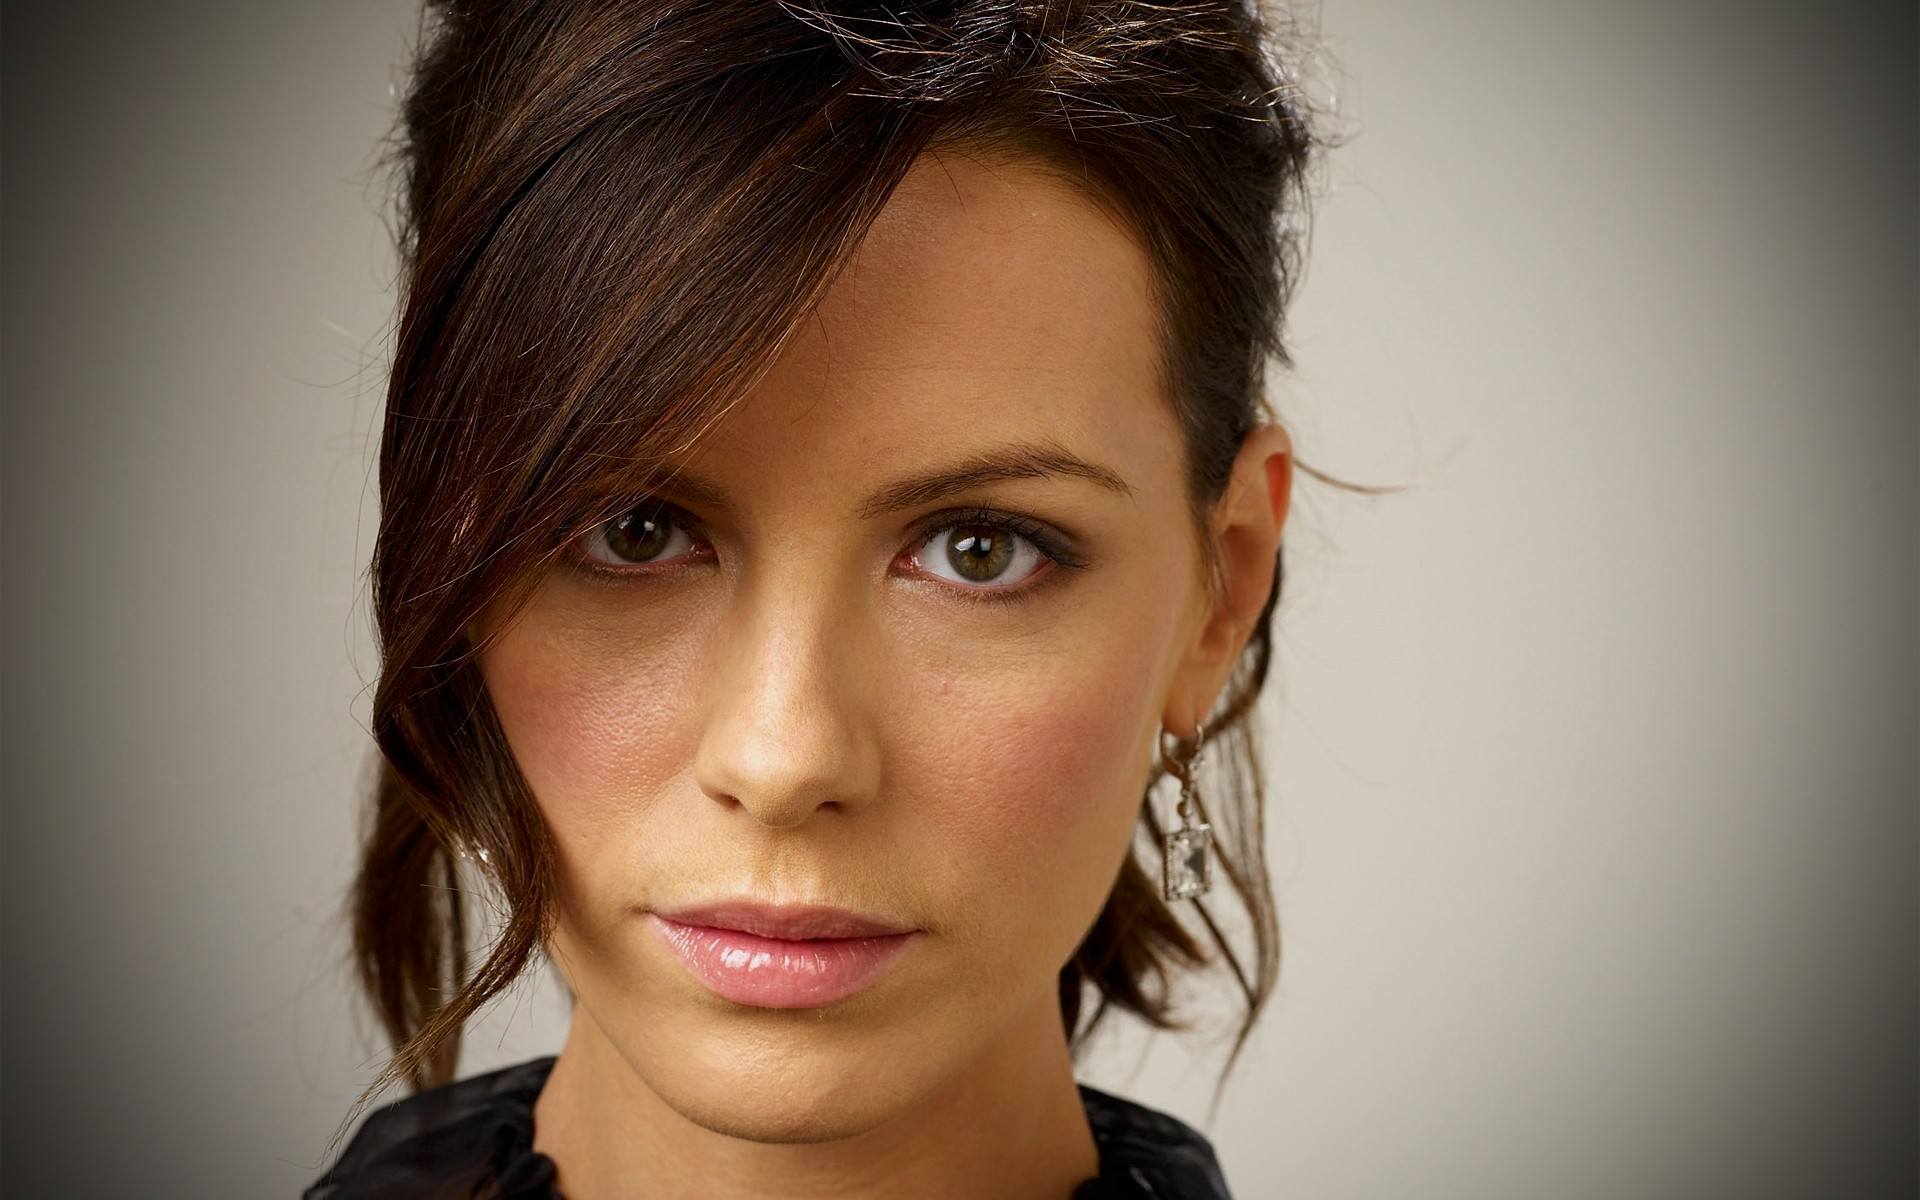 kate beckinsale wallpapers, pictures, images